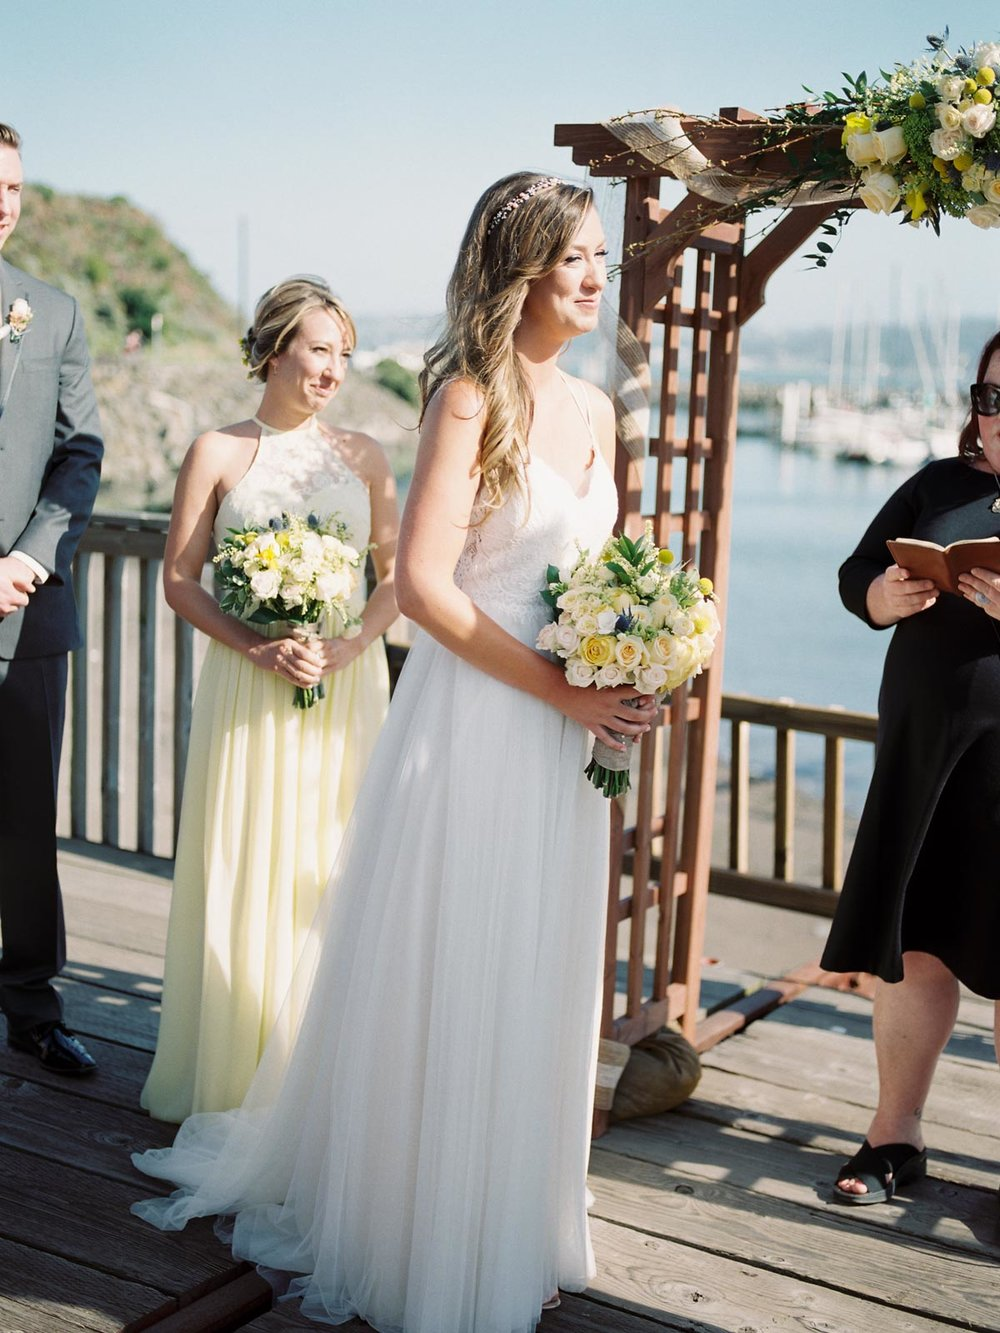 Gorgeous wedding in front of the Golden Gate Bridge at Presidio Yacht Club, captured by Bay Area Wedding Photographers Betsy & John